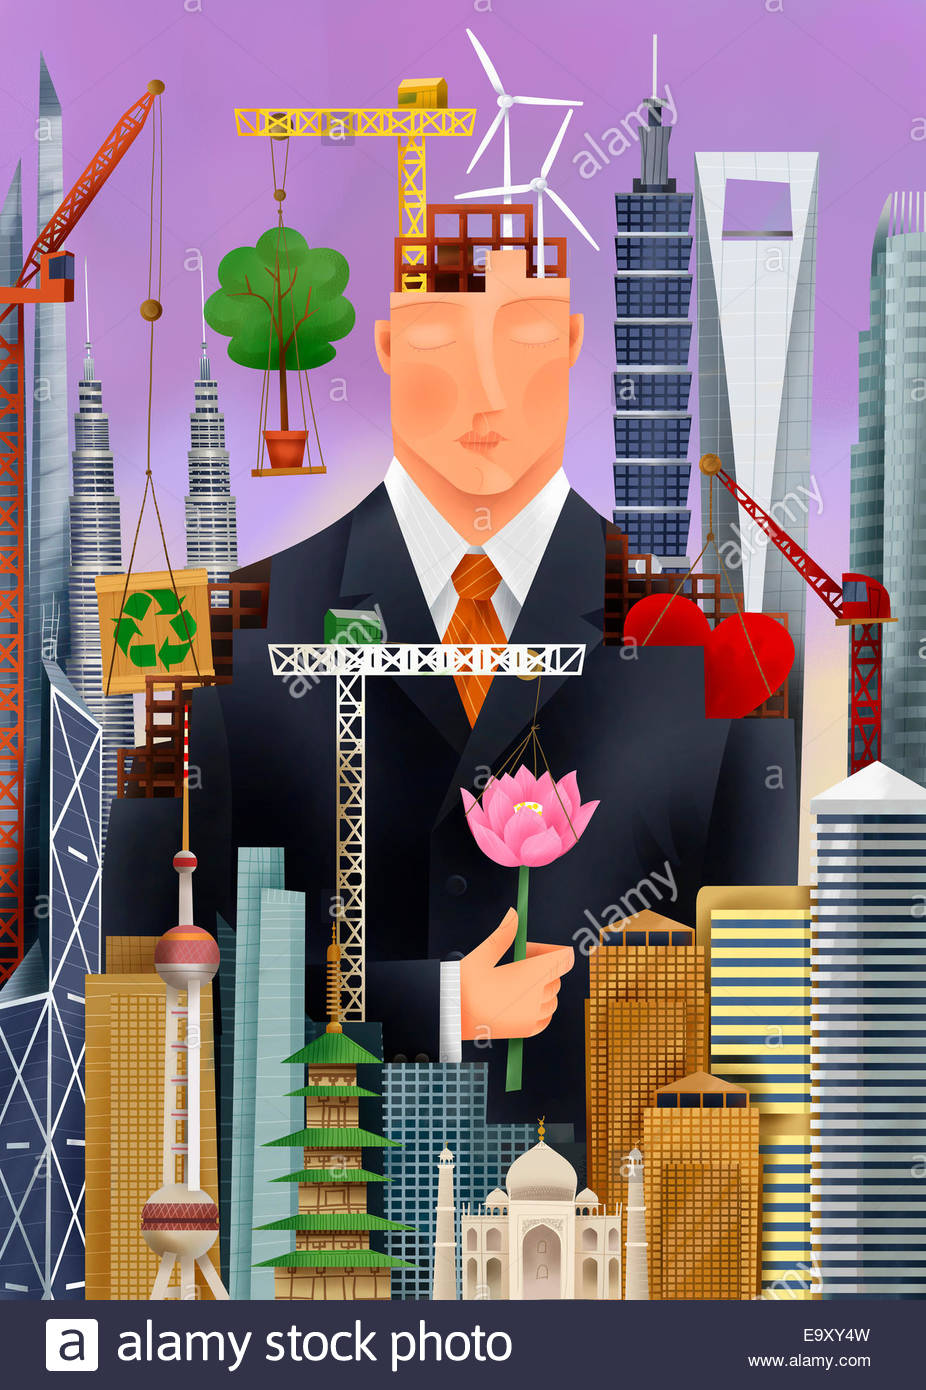 Serene businessman surrounded by environmental conservation symbols, international landmarks and building construction - Stock Image